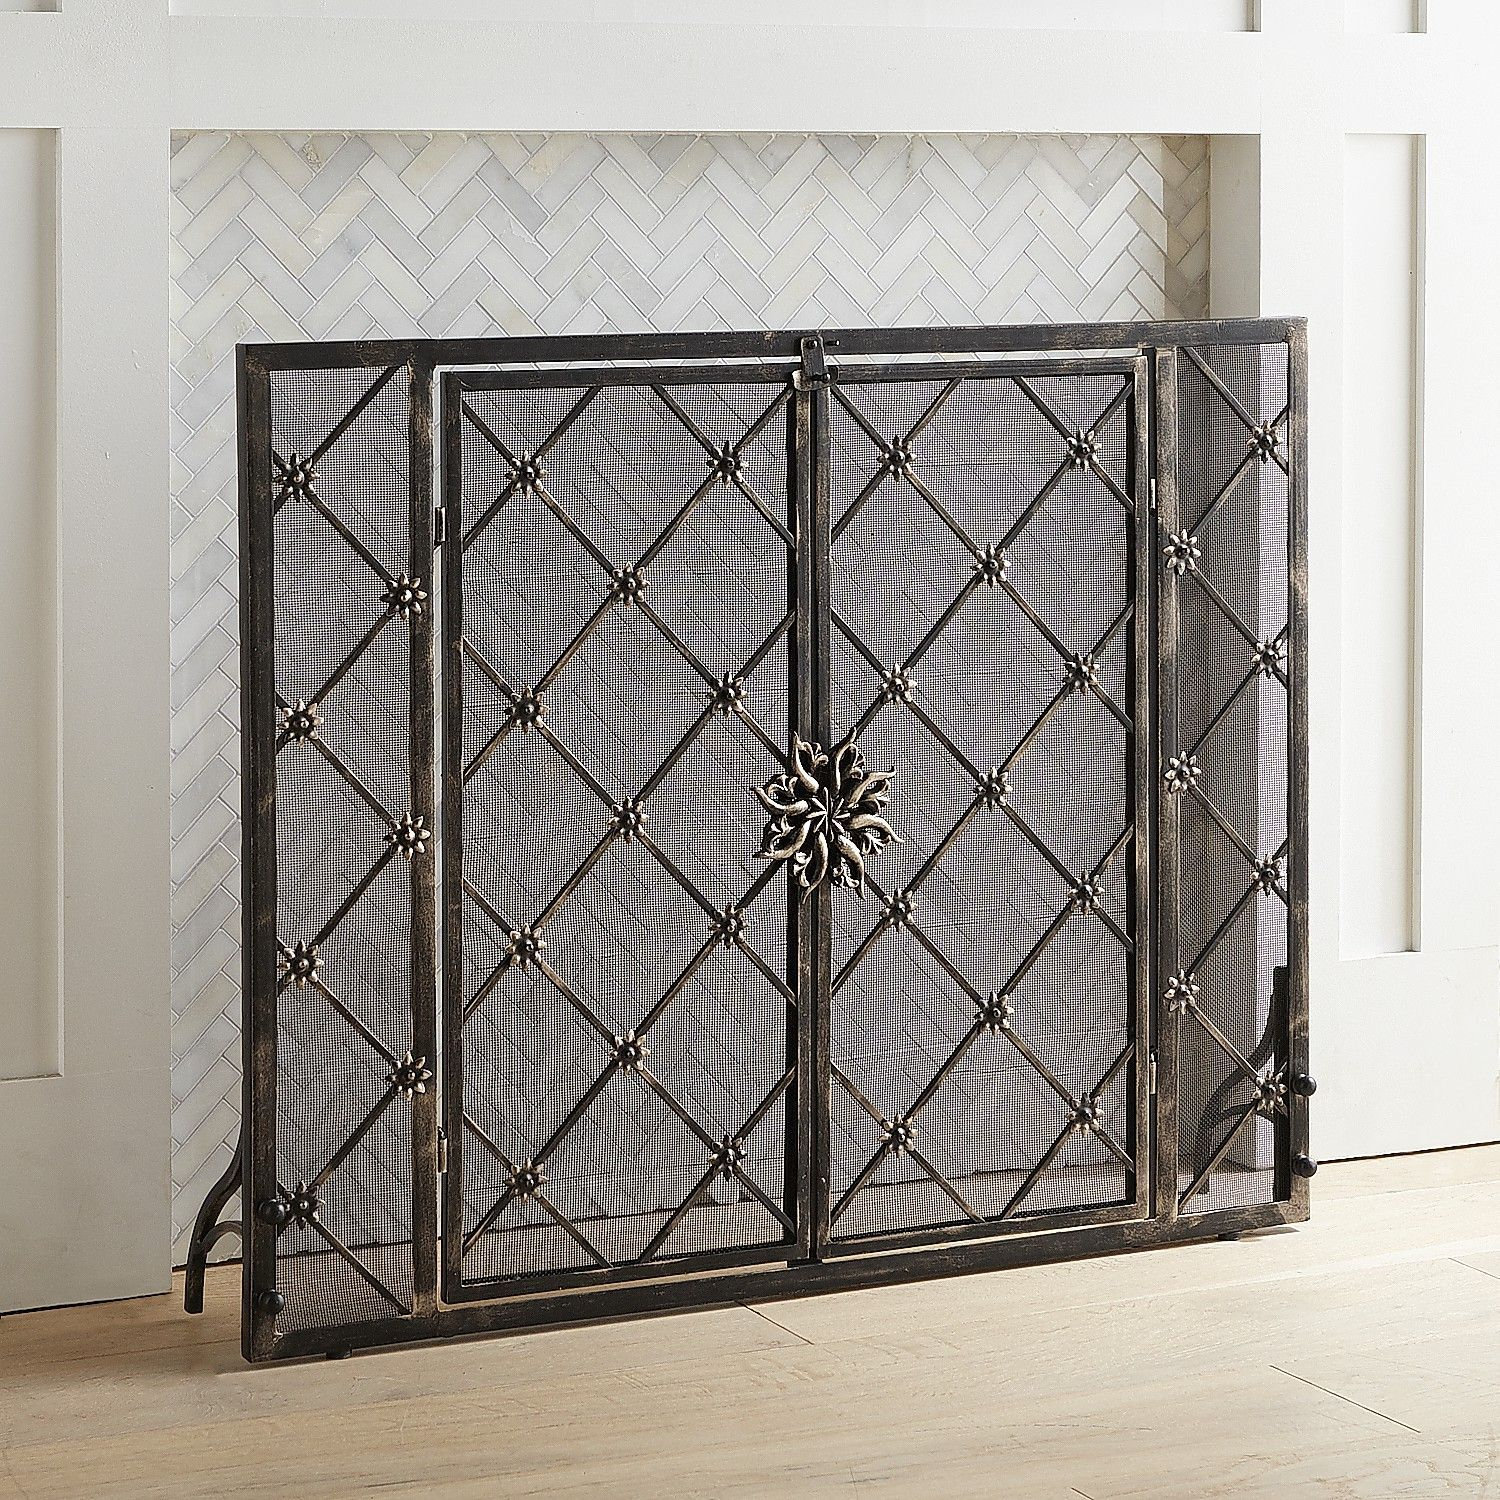 Pottery Barn Fireplace Screen Lovely Junction Fireplace Screen In 2019 Products